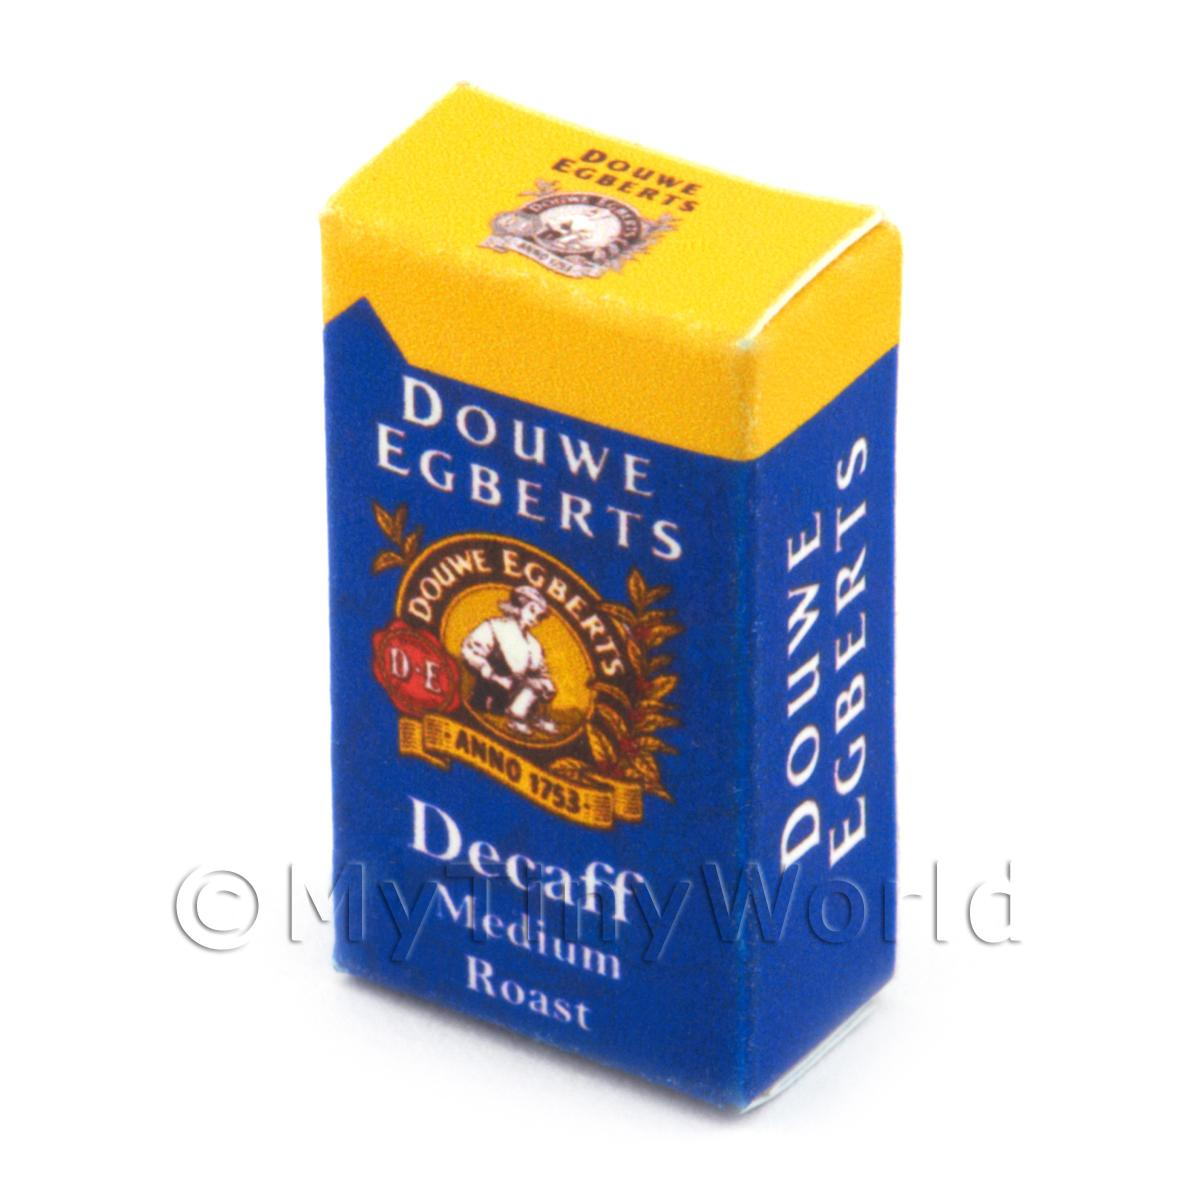 Dolls House Miniature Douwe Egberts Decaff Box